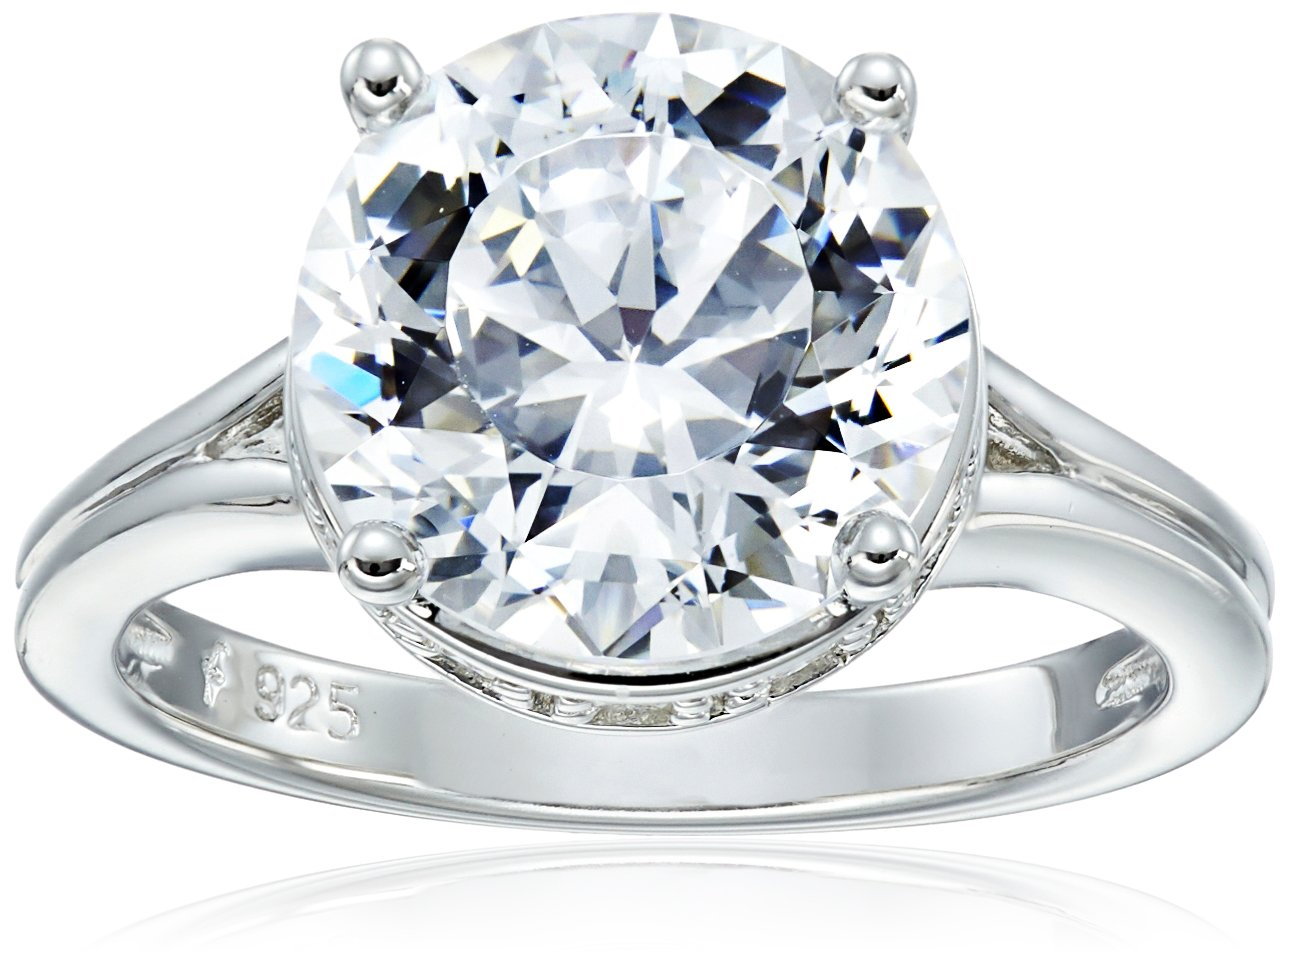 Platinum Plated 925 Sterling Silver''100 Facets Collection'' Solitaire AAA Cubic Zirconia Ring, Size 5 (4 cttw) by Amazon Collection